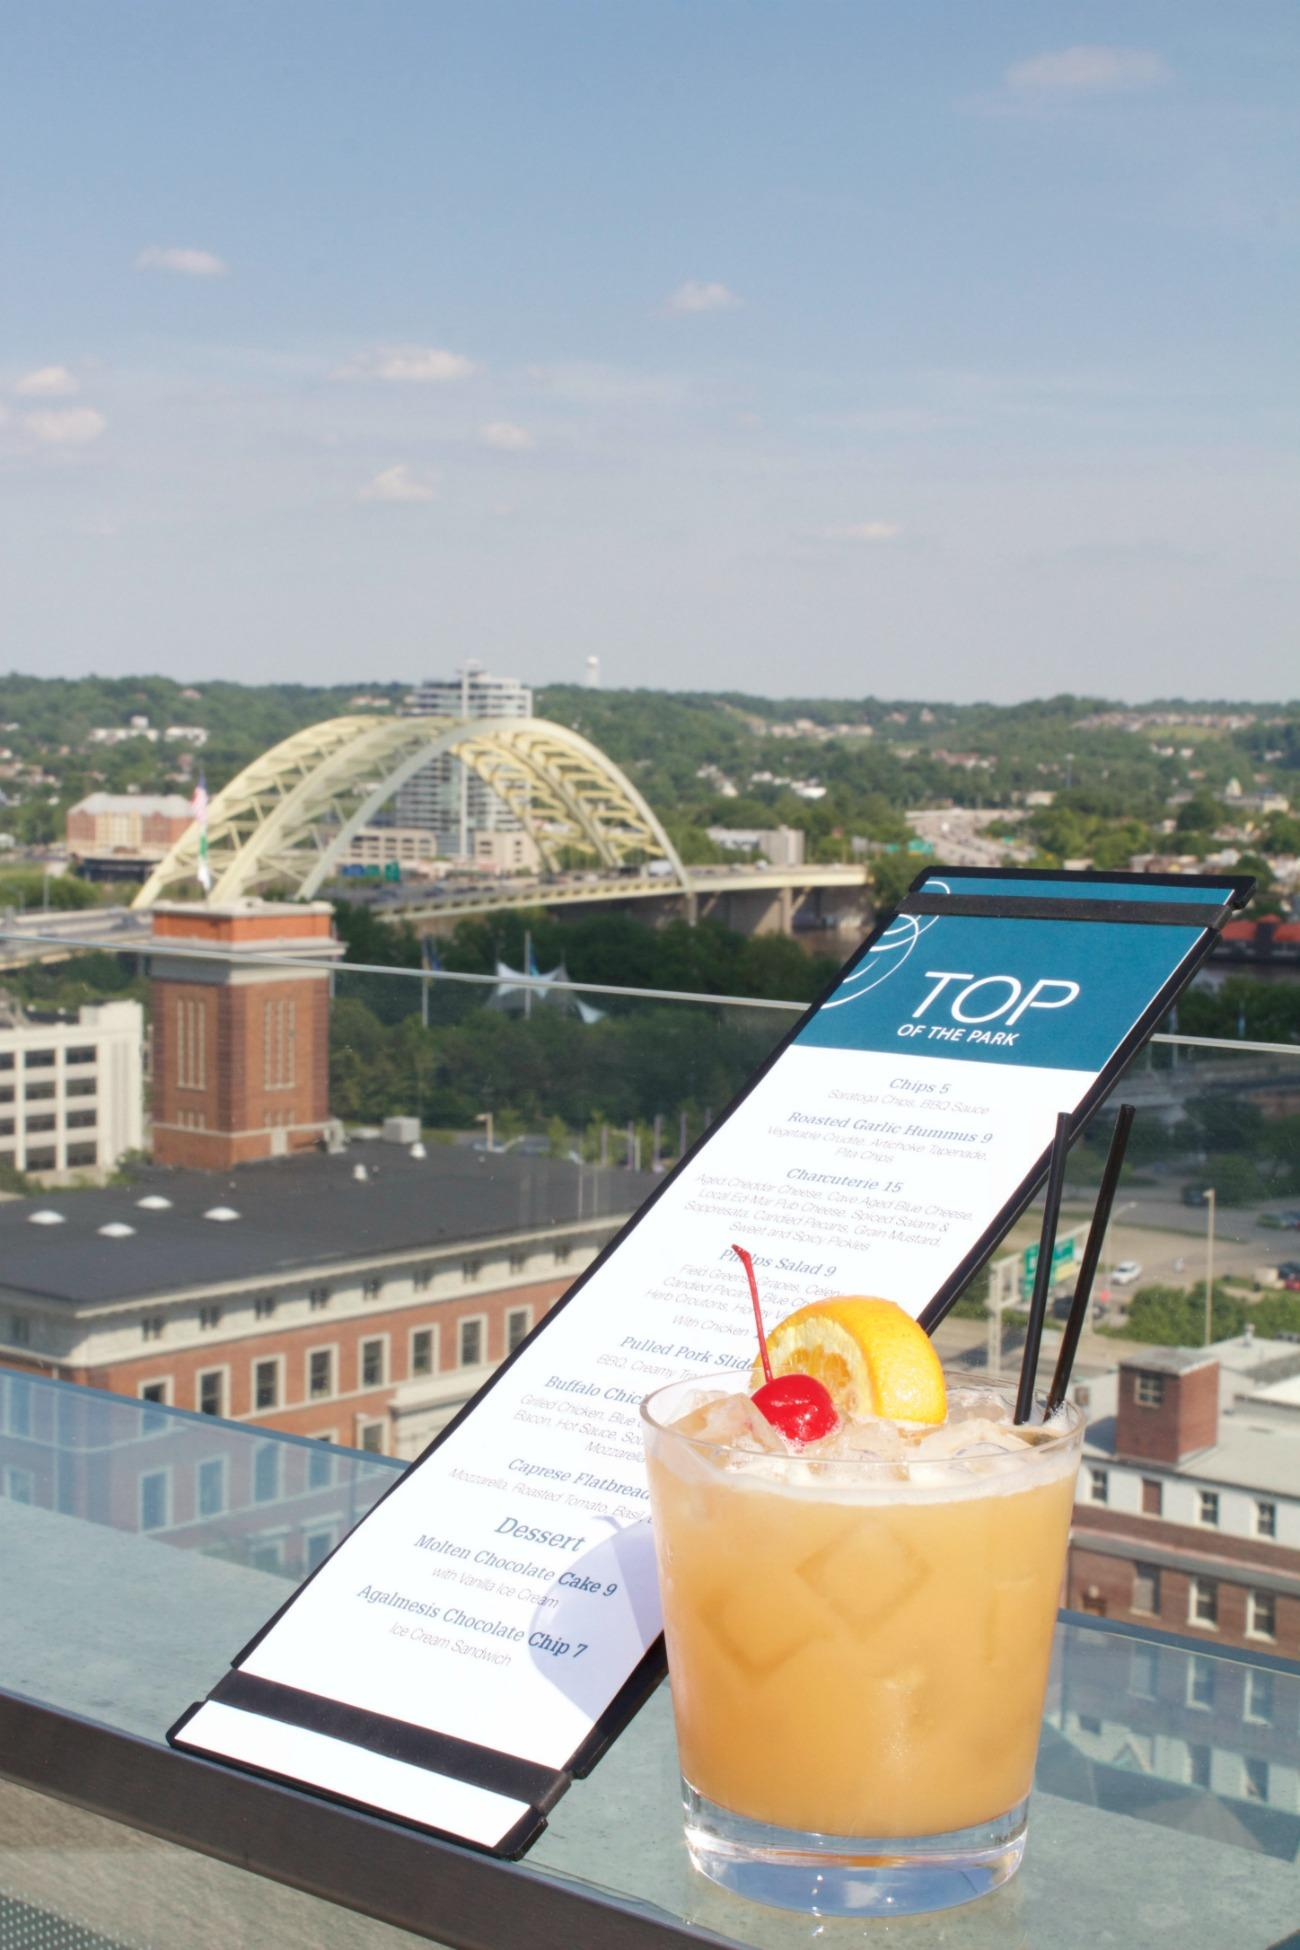 Top of the Park is located at 506 E 4th Street (45202). The bar is a haven for many YPs and business professionals seeking a unique happy hour experience featuring music and two levels of front-row seats to tremendous city views. / Image: Emily Cahill // Published: 6.7.17